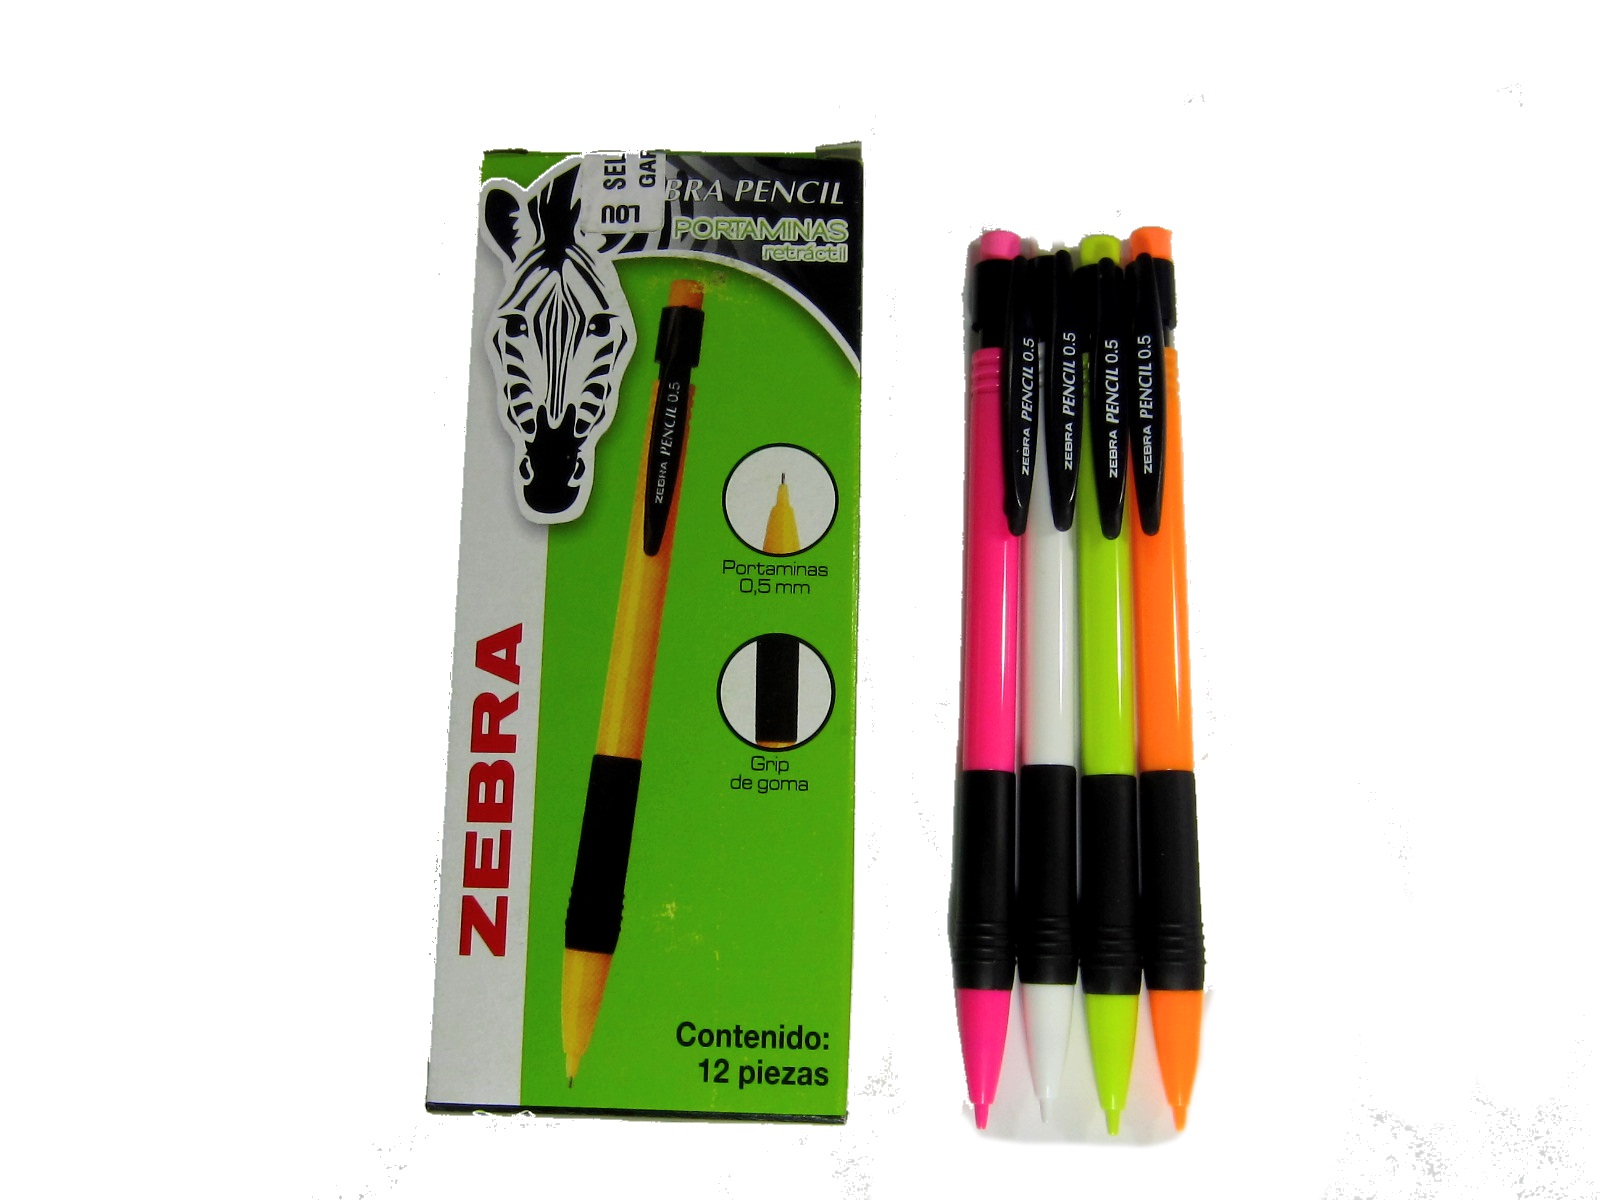 LAPICERO ZEBRA PENCIL RETRACTIL 0.5MM VARIOS COLORES 6209